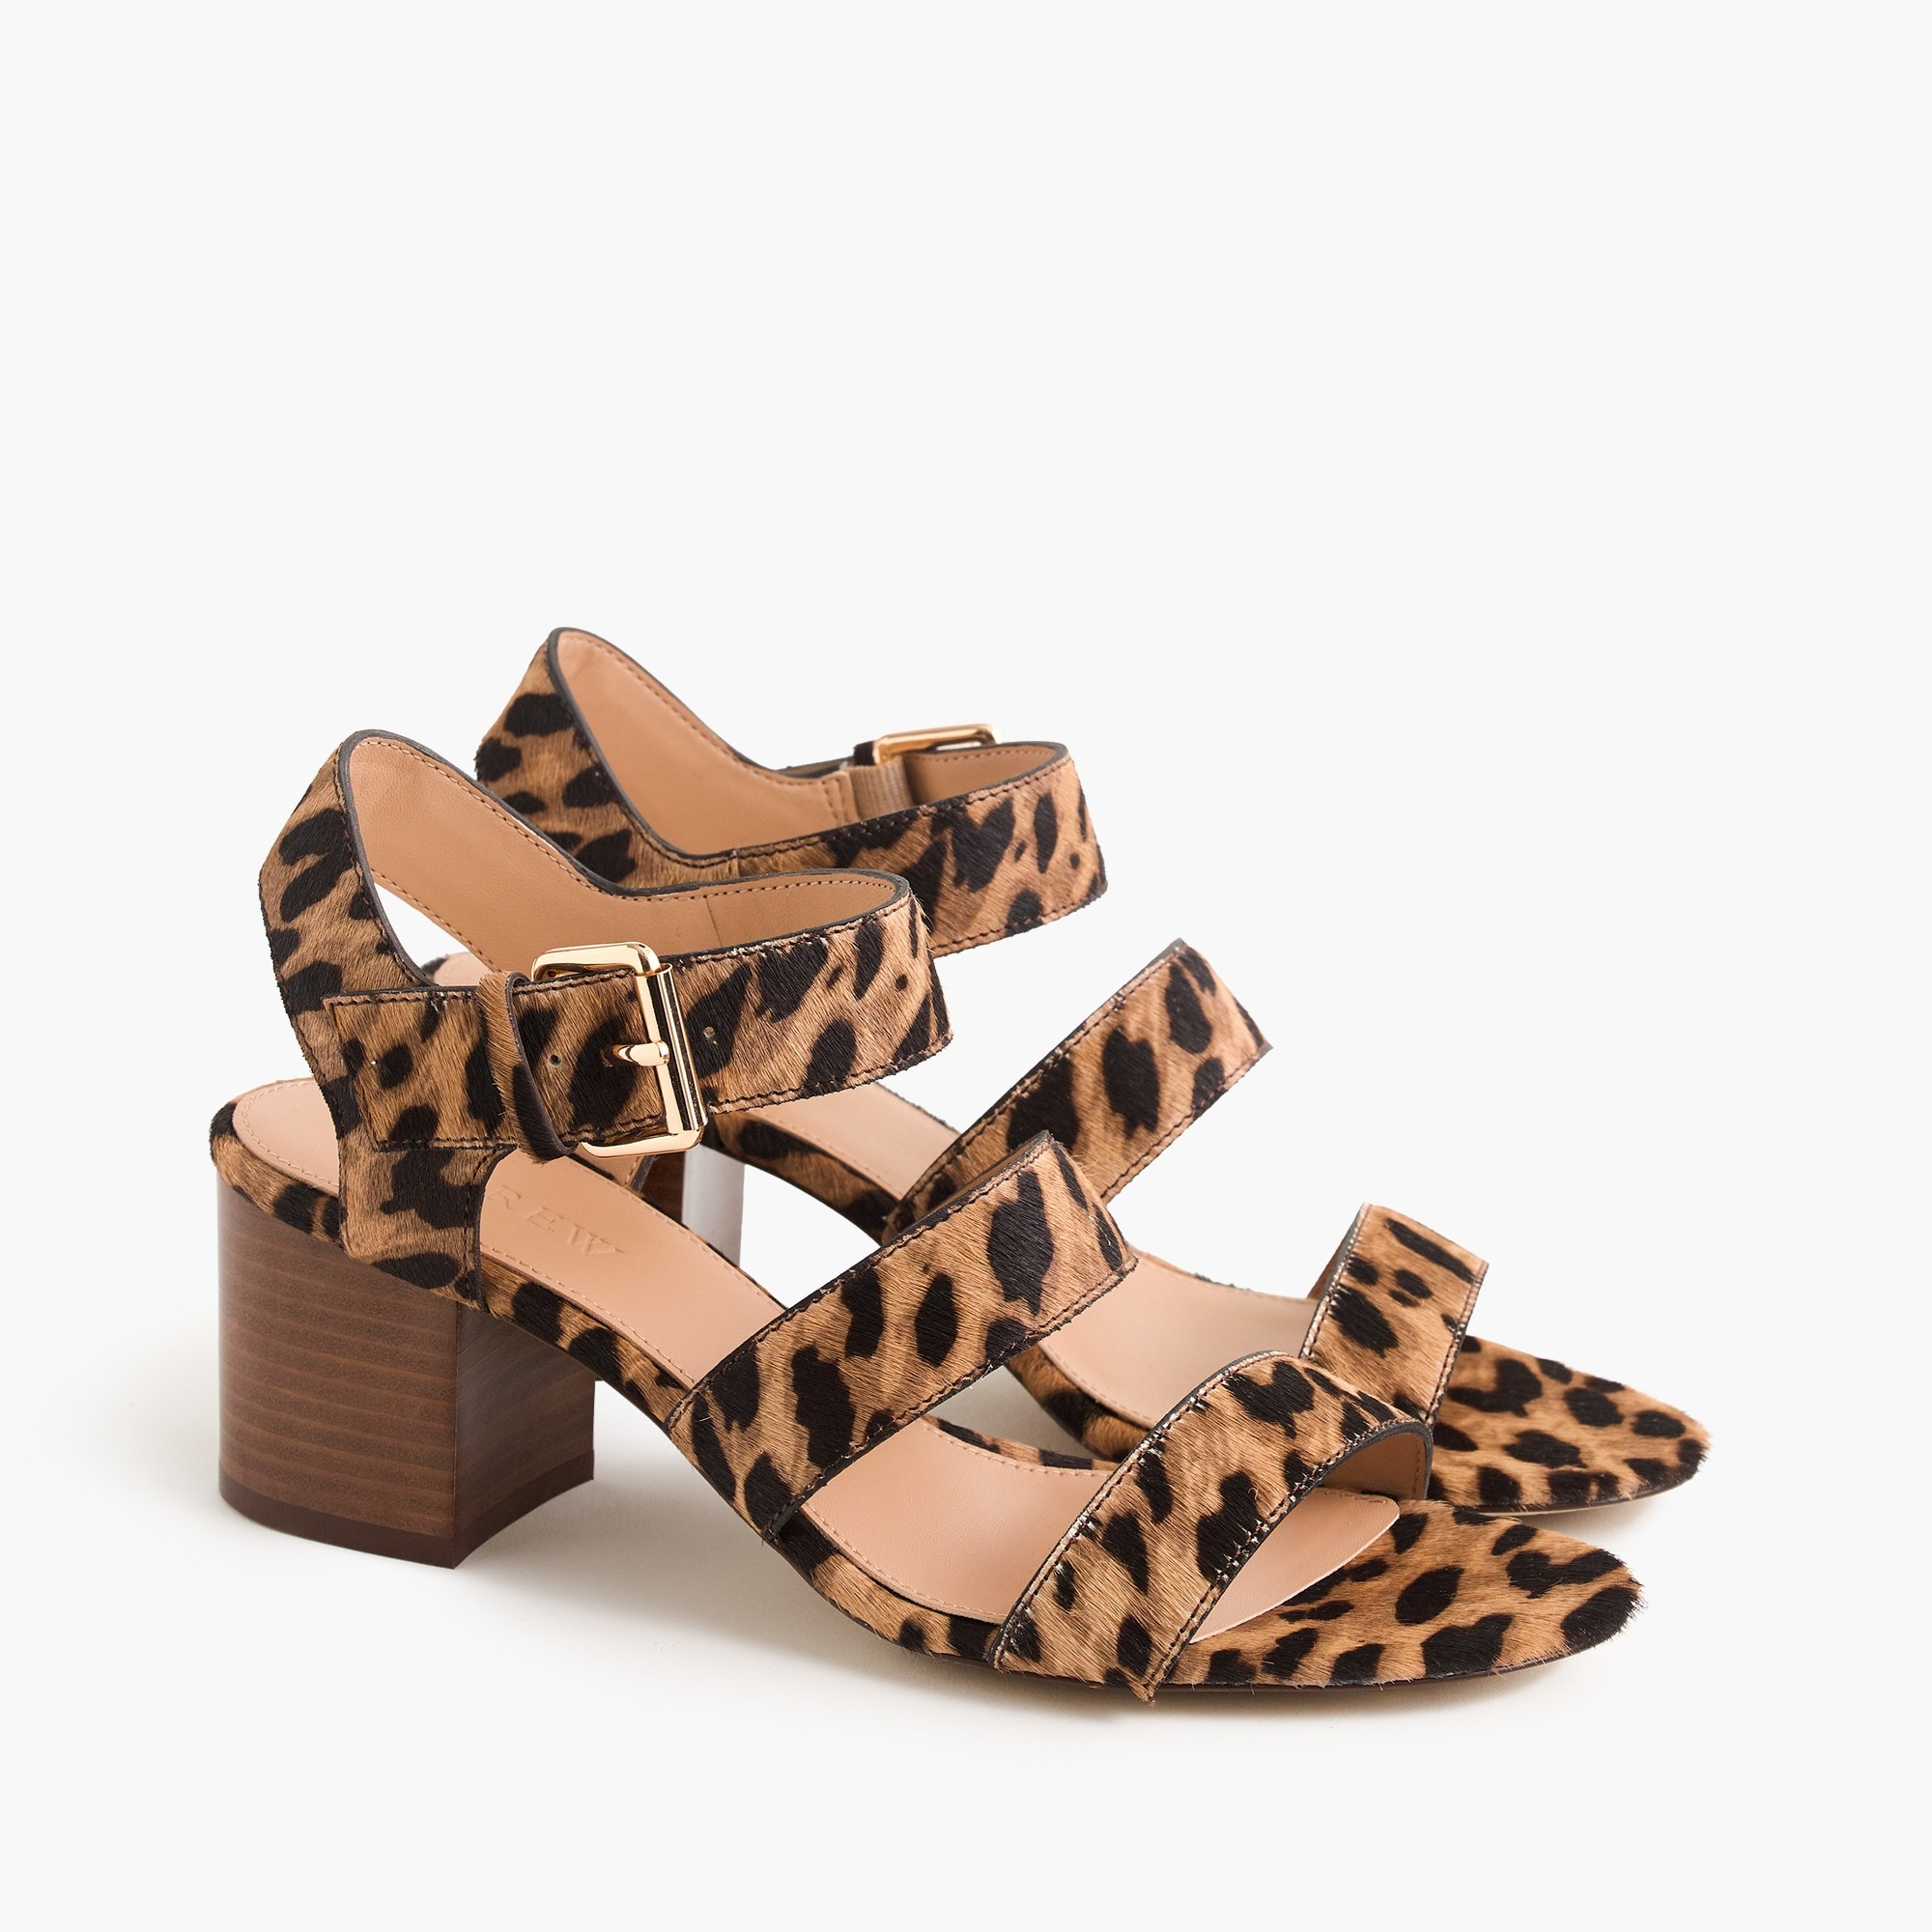 Image 1 for Three-strap sandals in leopard calf hair